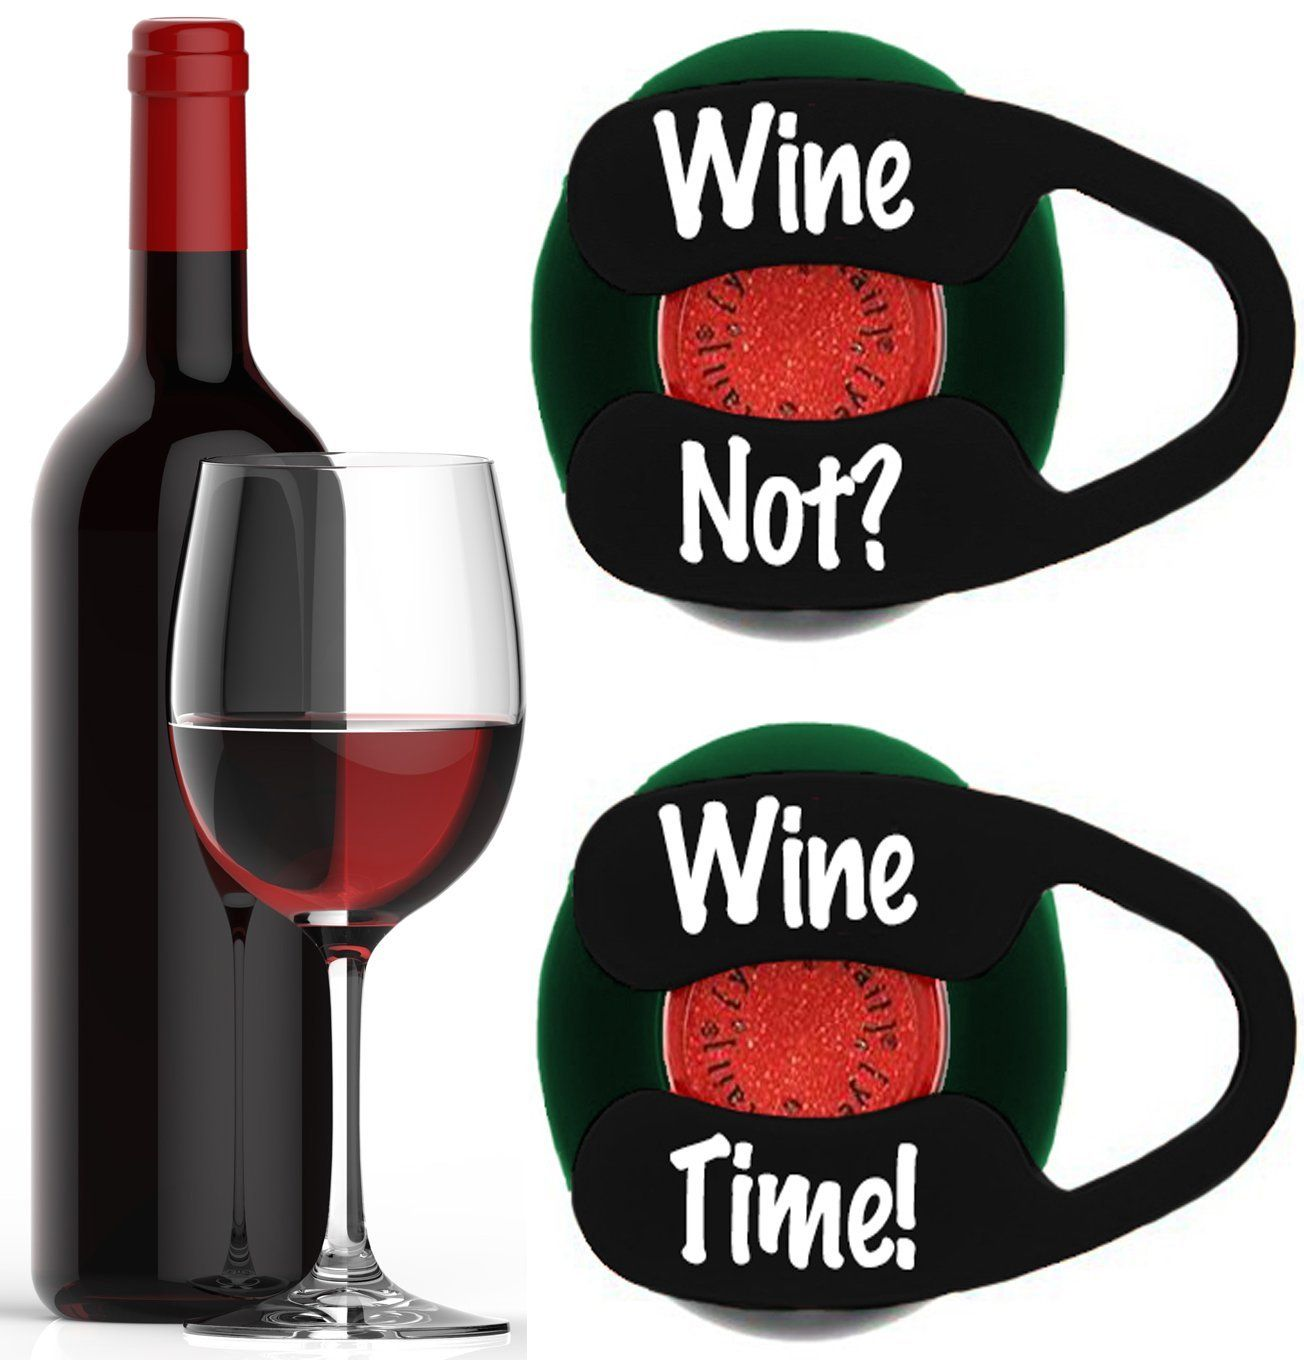 71xmtdibh1l Sl1360 Wine Accessories Gift Gifts For Wine Lovers Wine